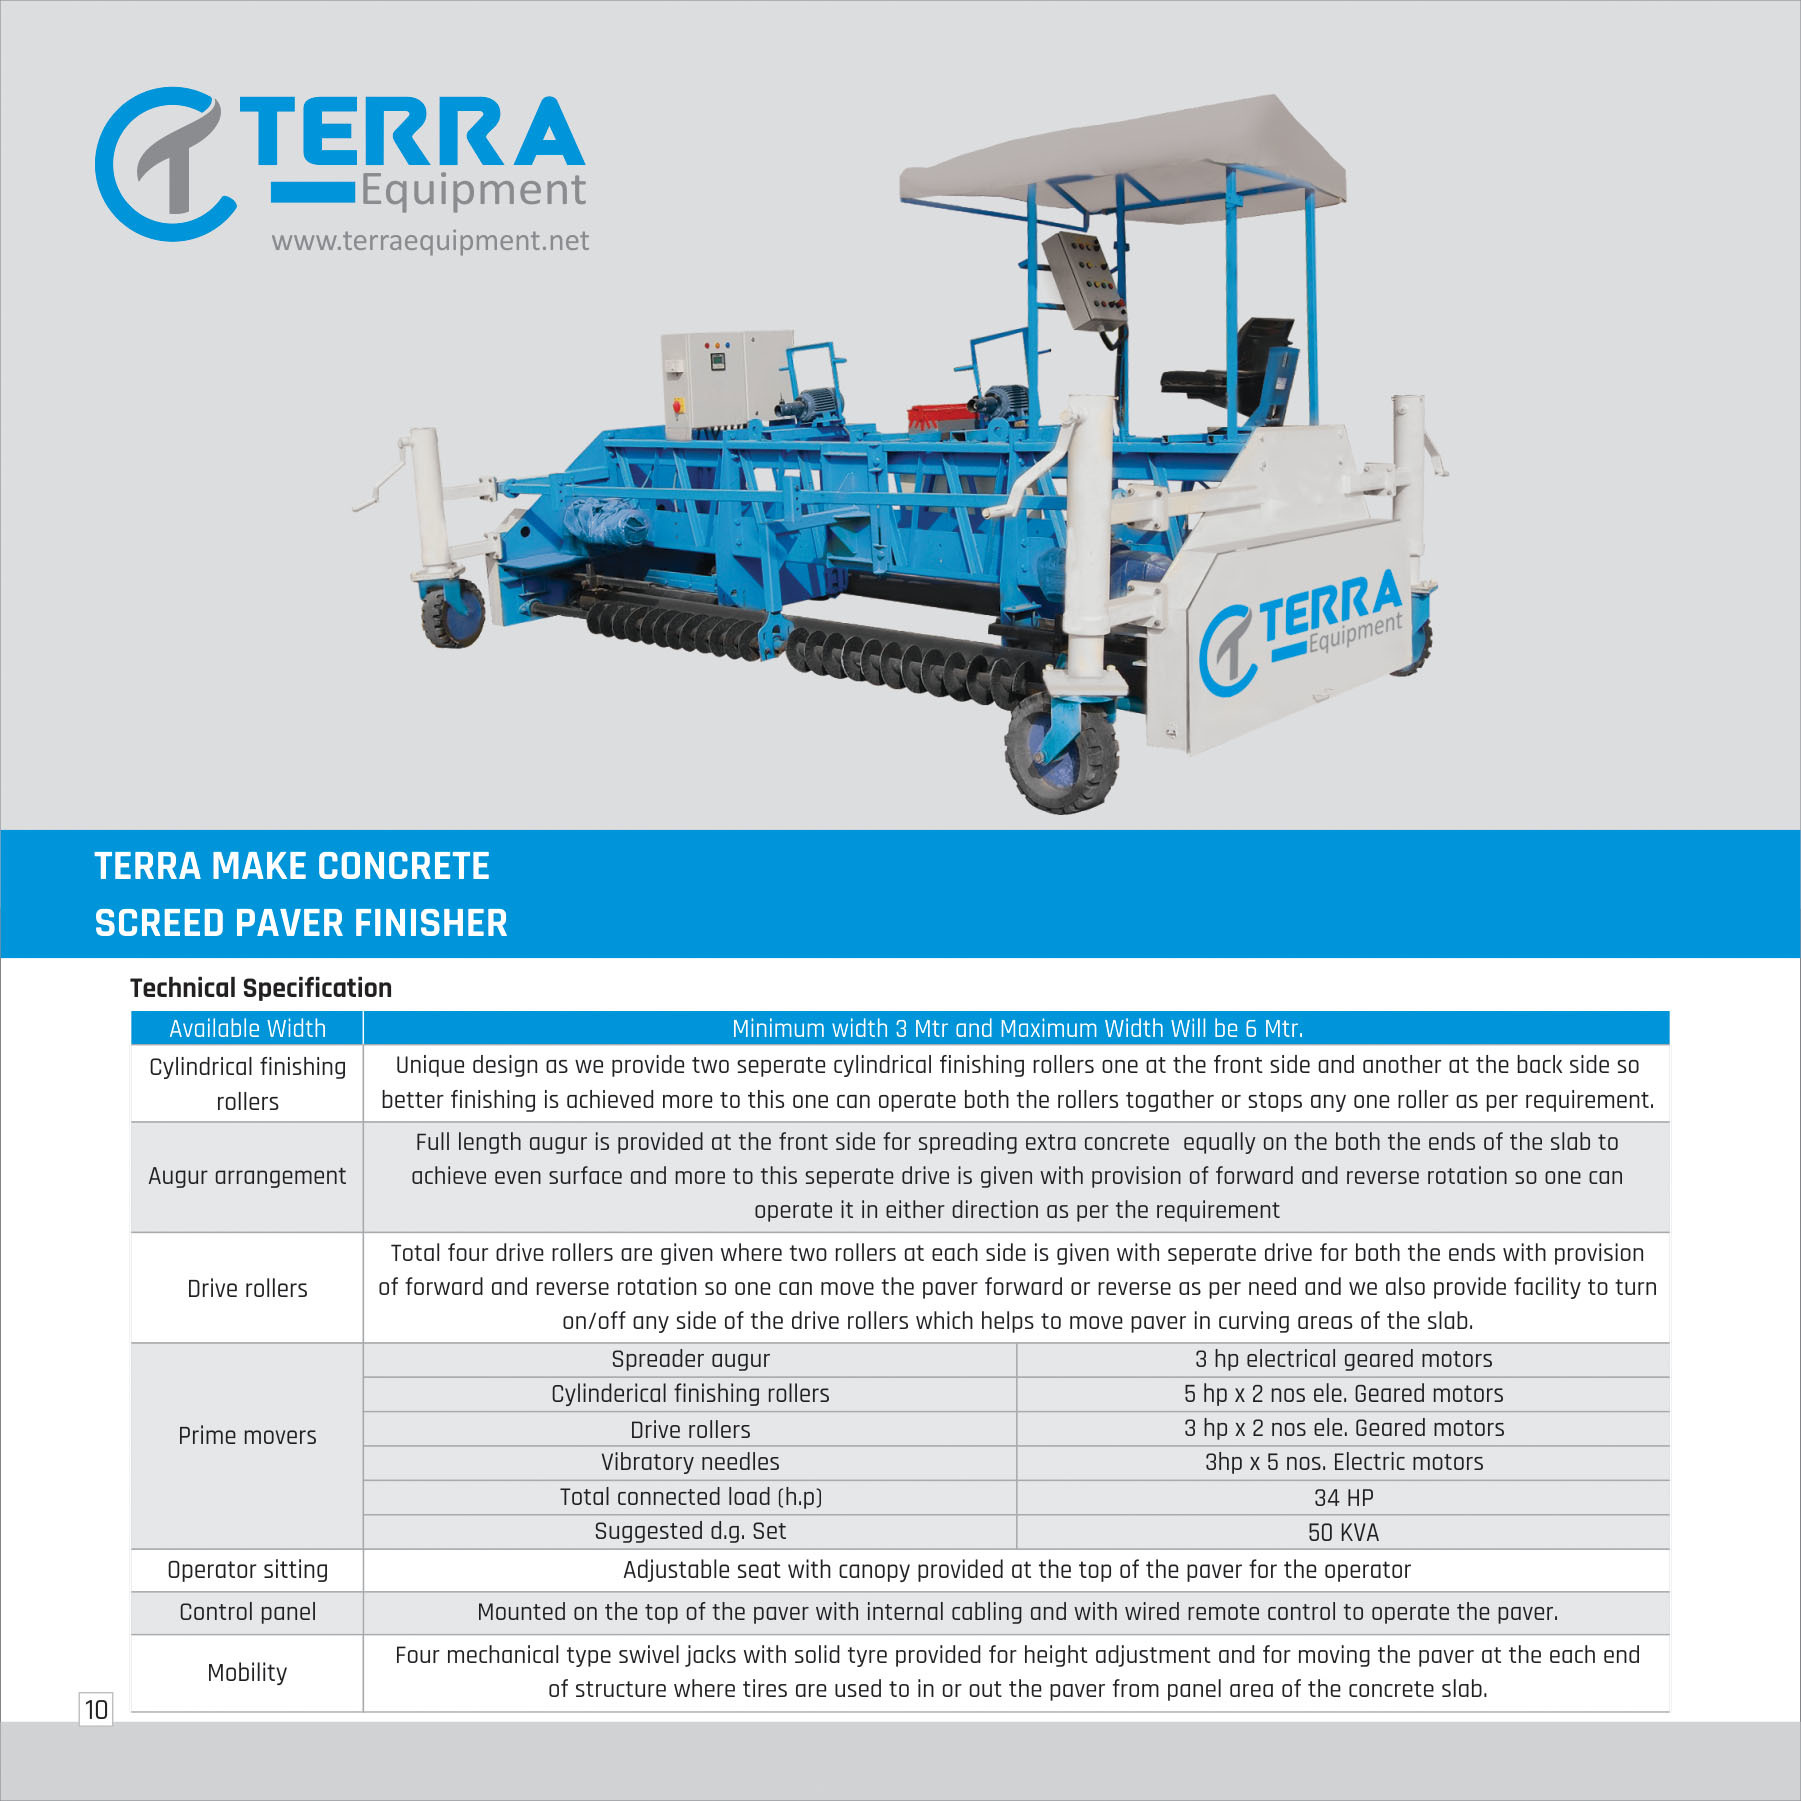 Concrete Screed Paver Finisher